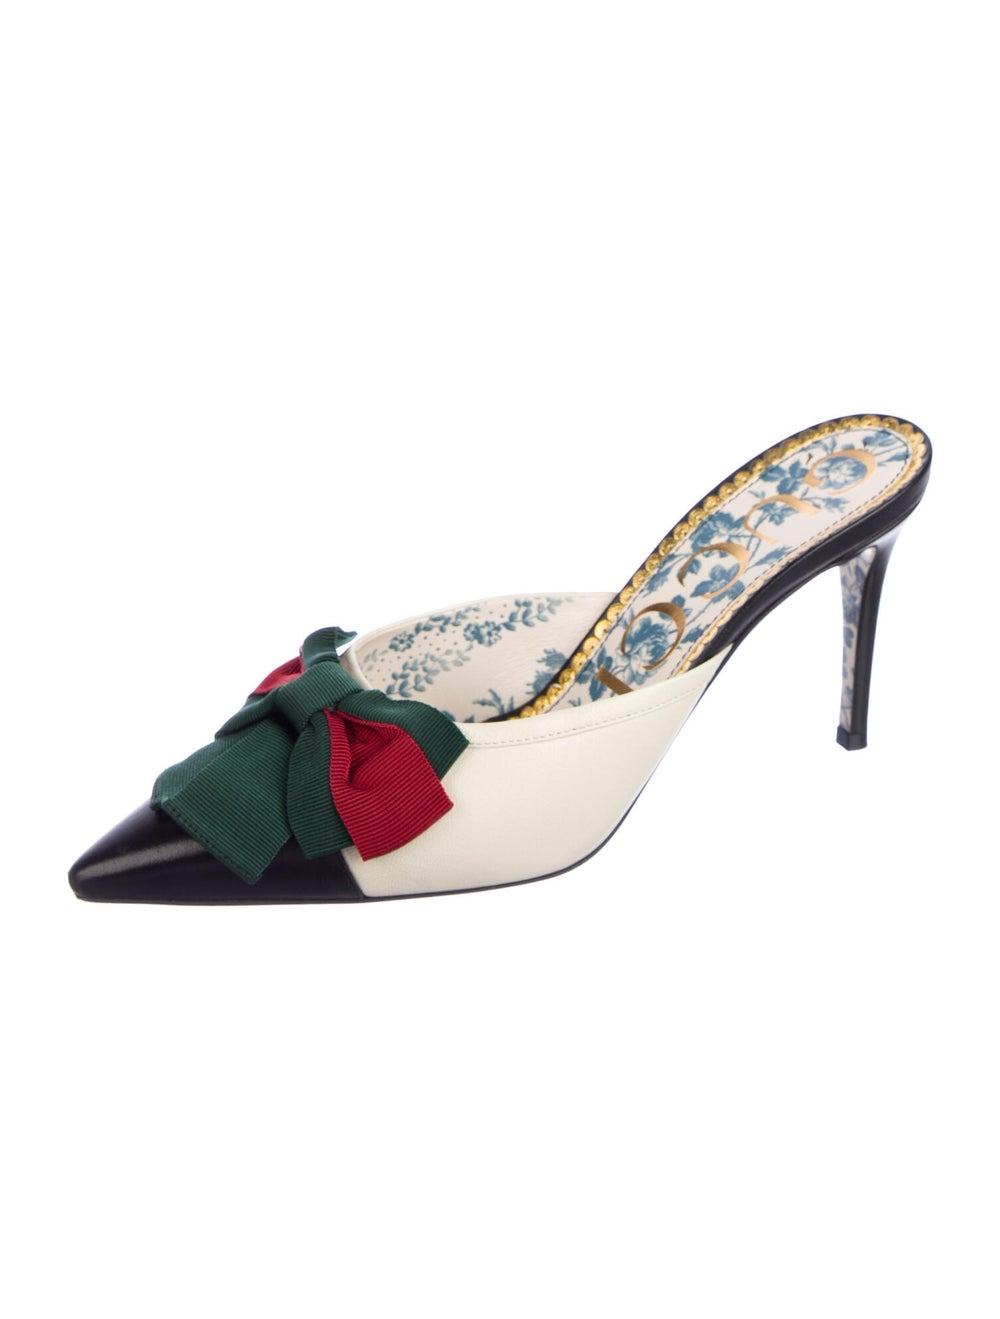 Gucci Web Accent Leather Mules - image 2